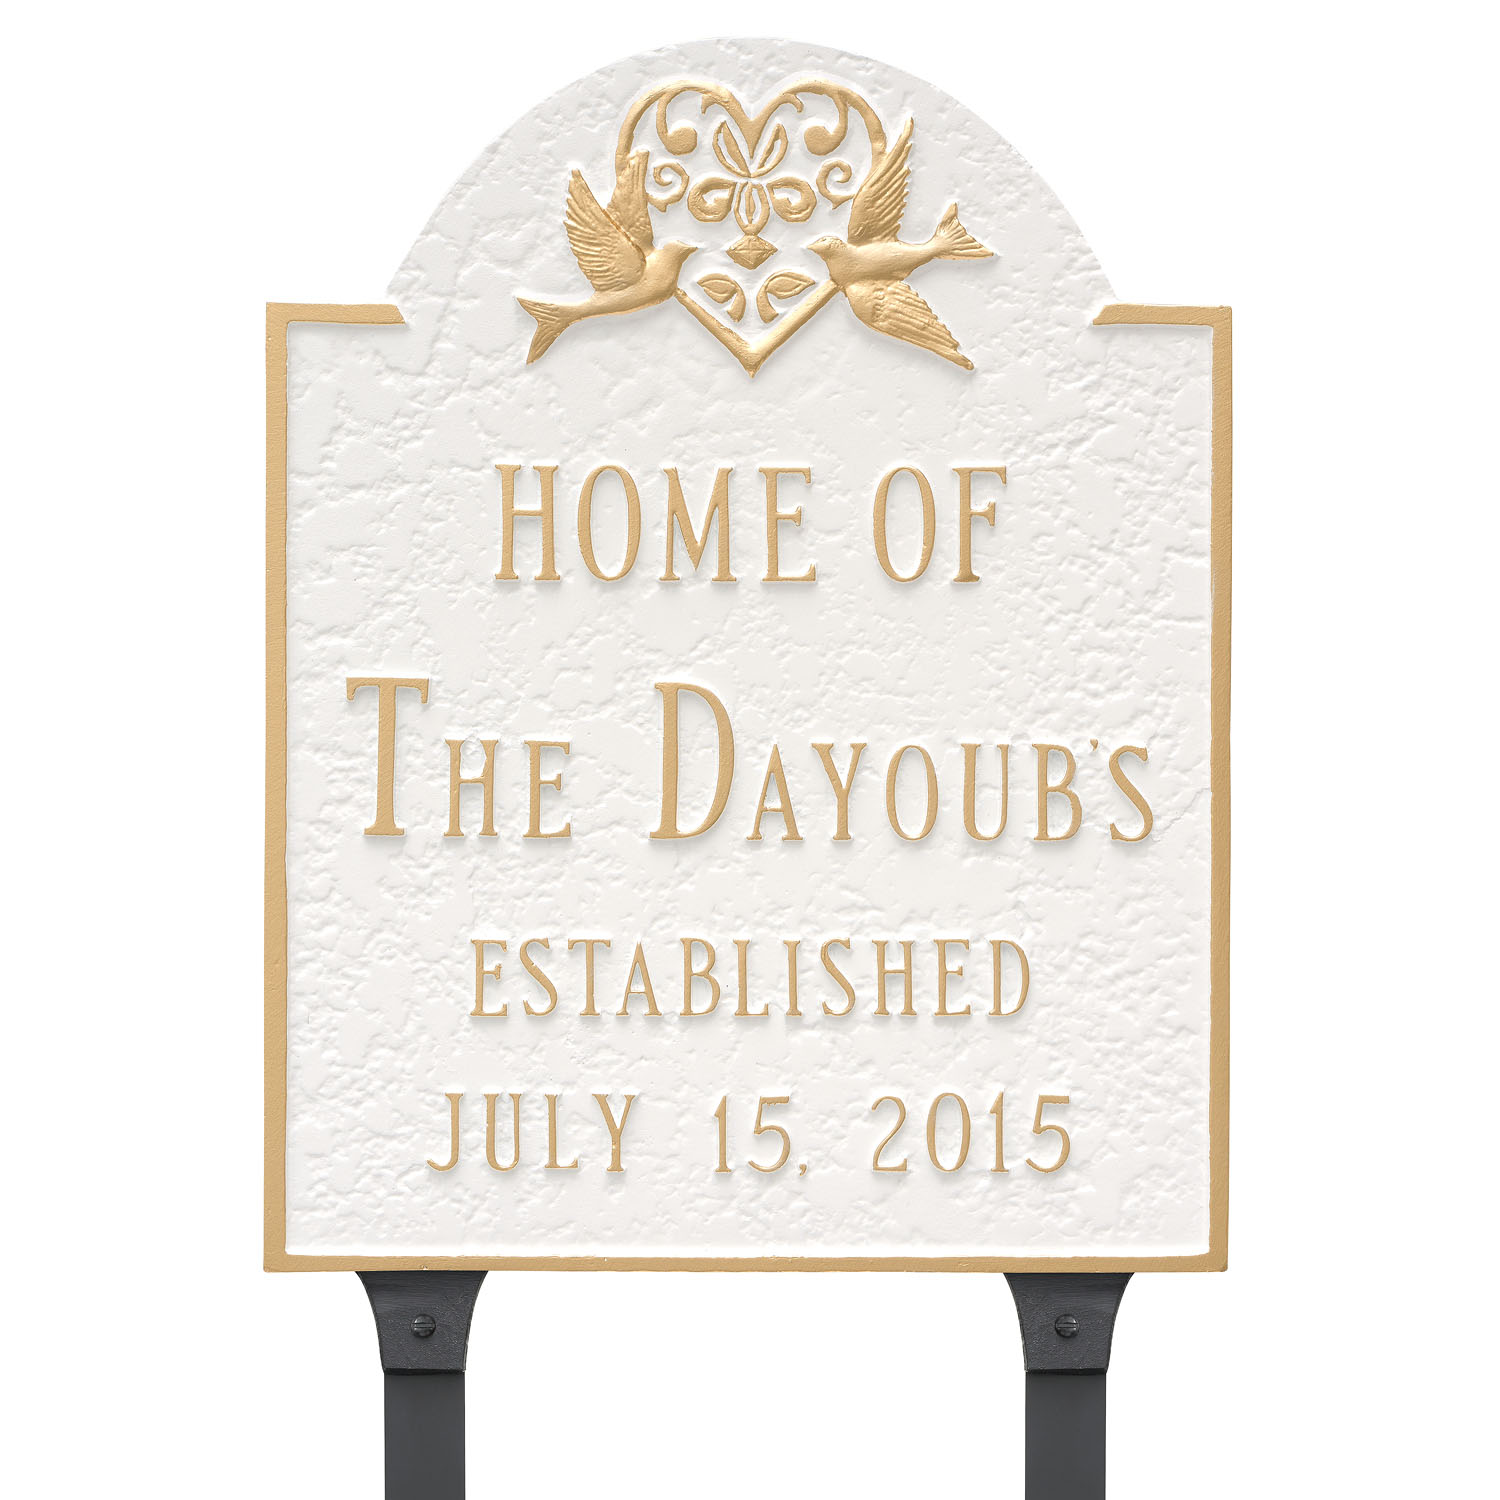 Doves Established - Wedding Date Home Plaque w/ Surname